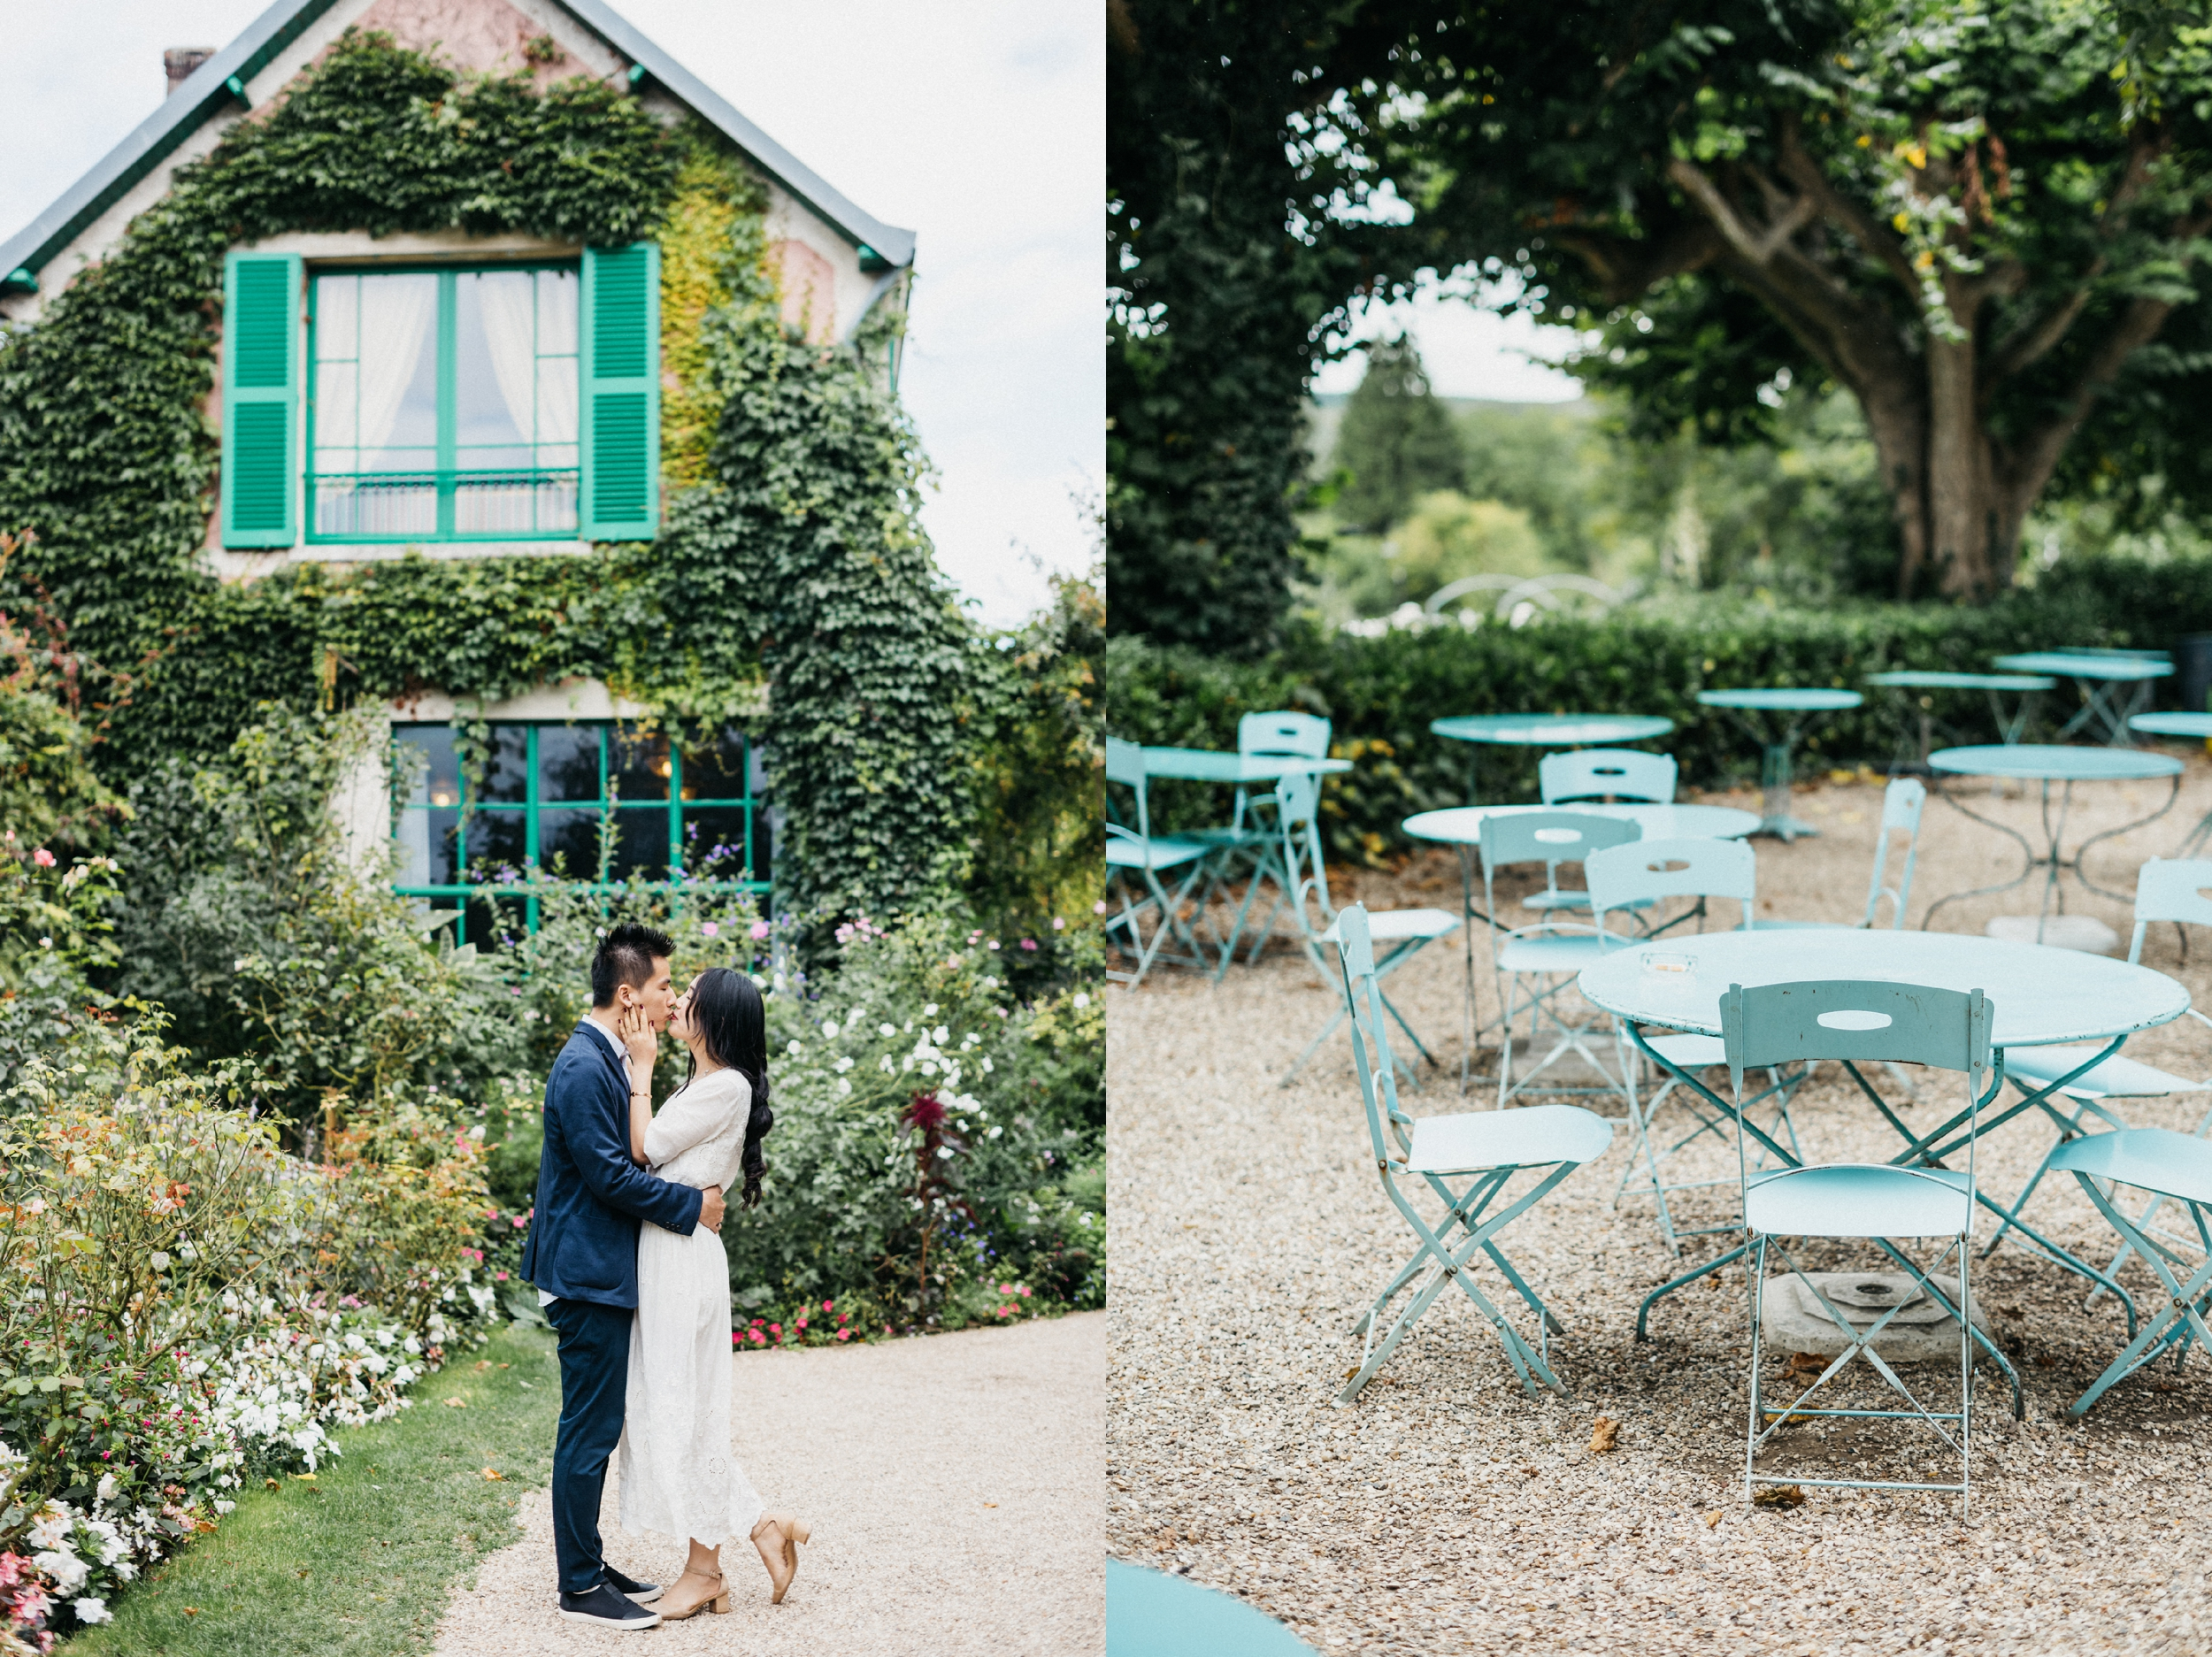 desiree-gardner-photography-pairs-france-monet-garden-monets-couple-wedding-engagement-giverny-30-a-30a-florida_0023.jpg